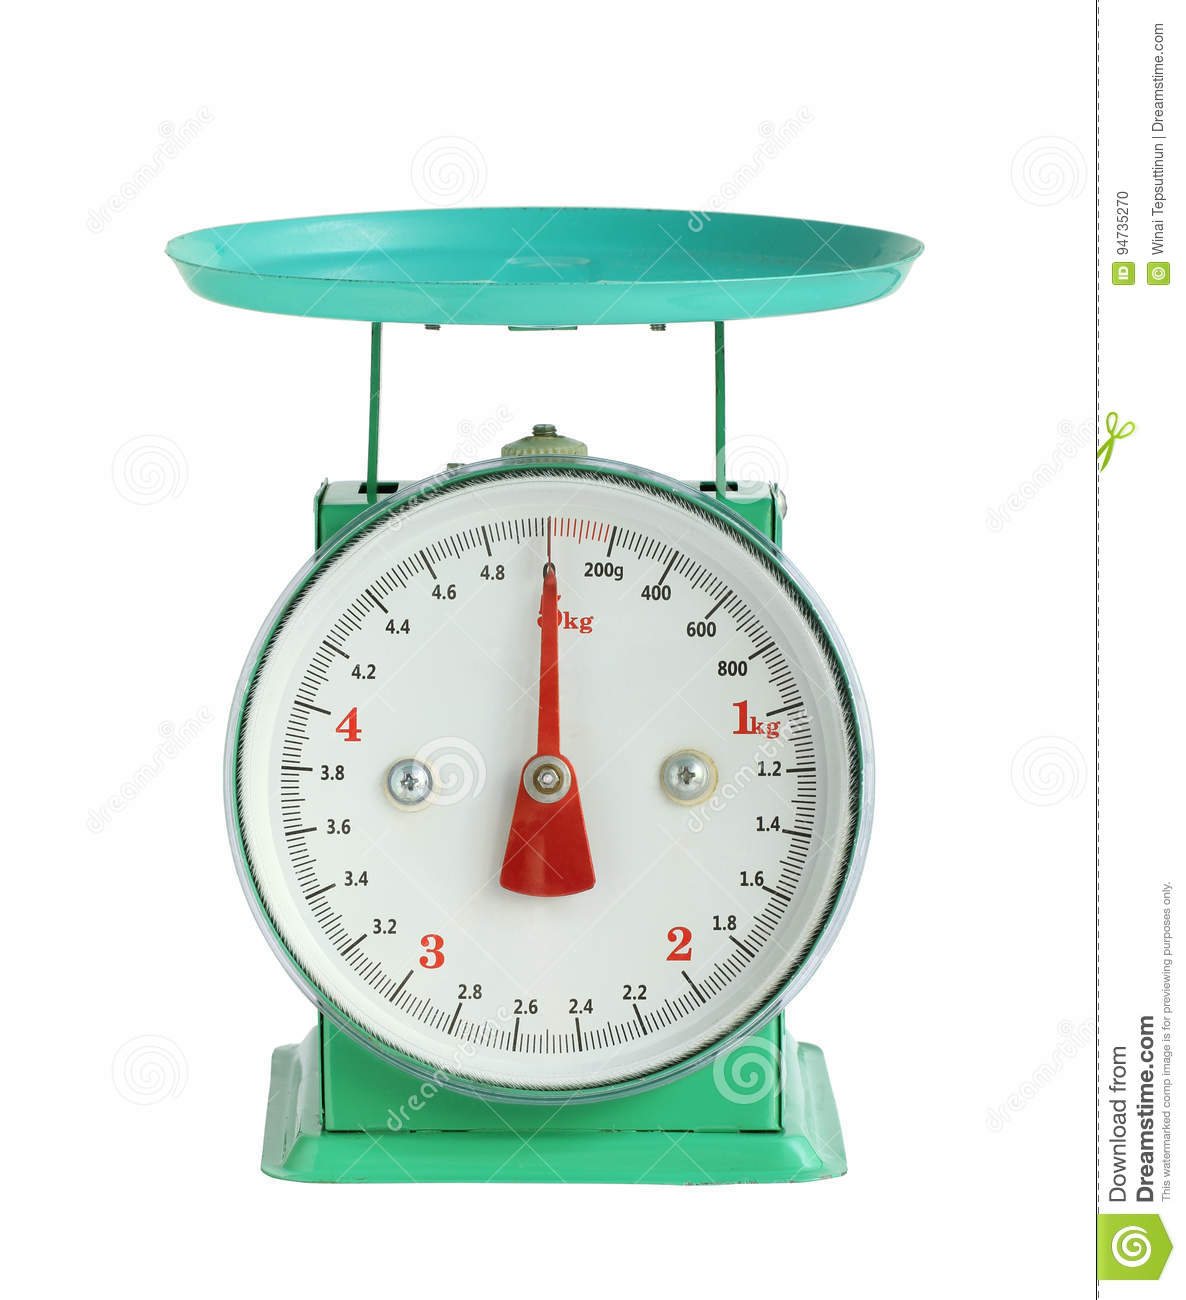 Weight scale stock photo  Image of weight, food, object